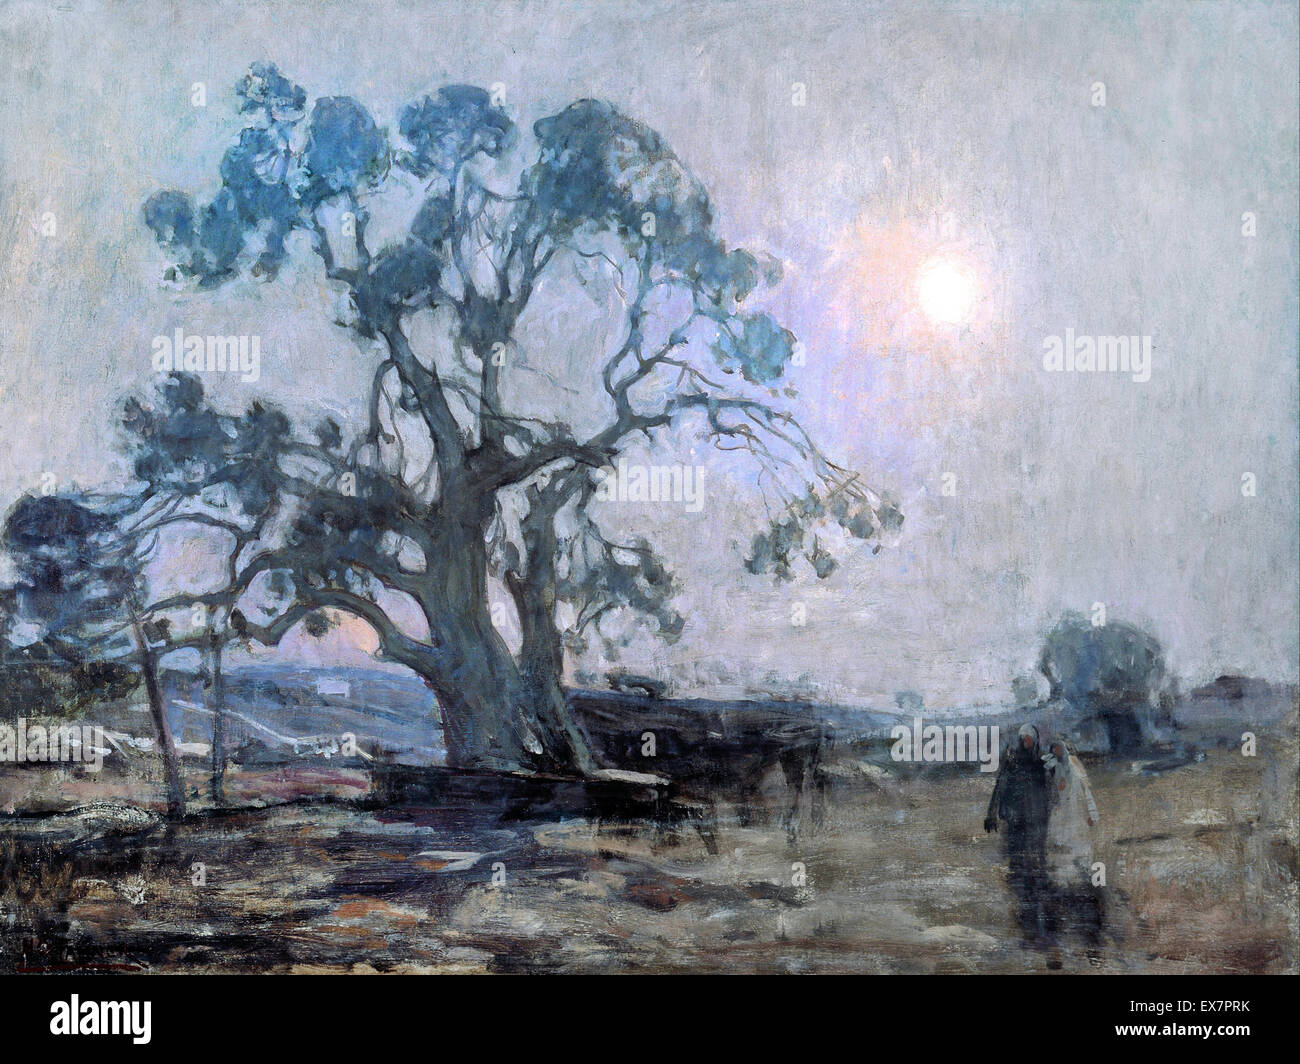 Henry Ossawa Tanner, Abraham's Oak 1905 Oil on canvas. Smithsonian American Art Museum, Washington, D.C., USA. Stock Photo